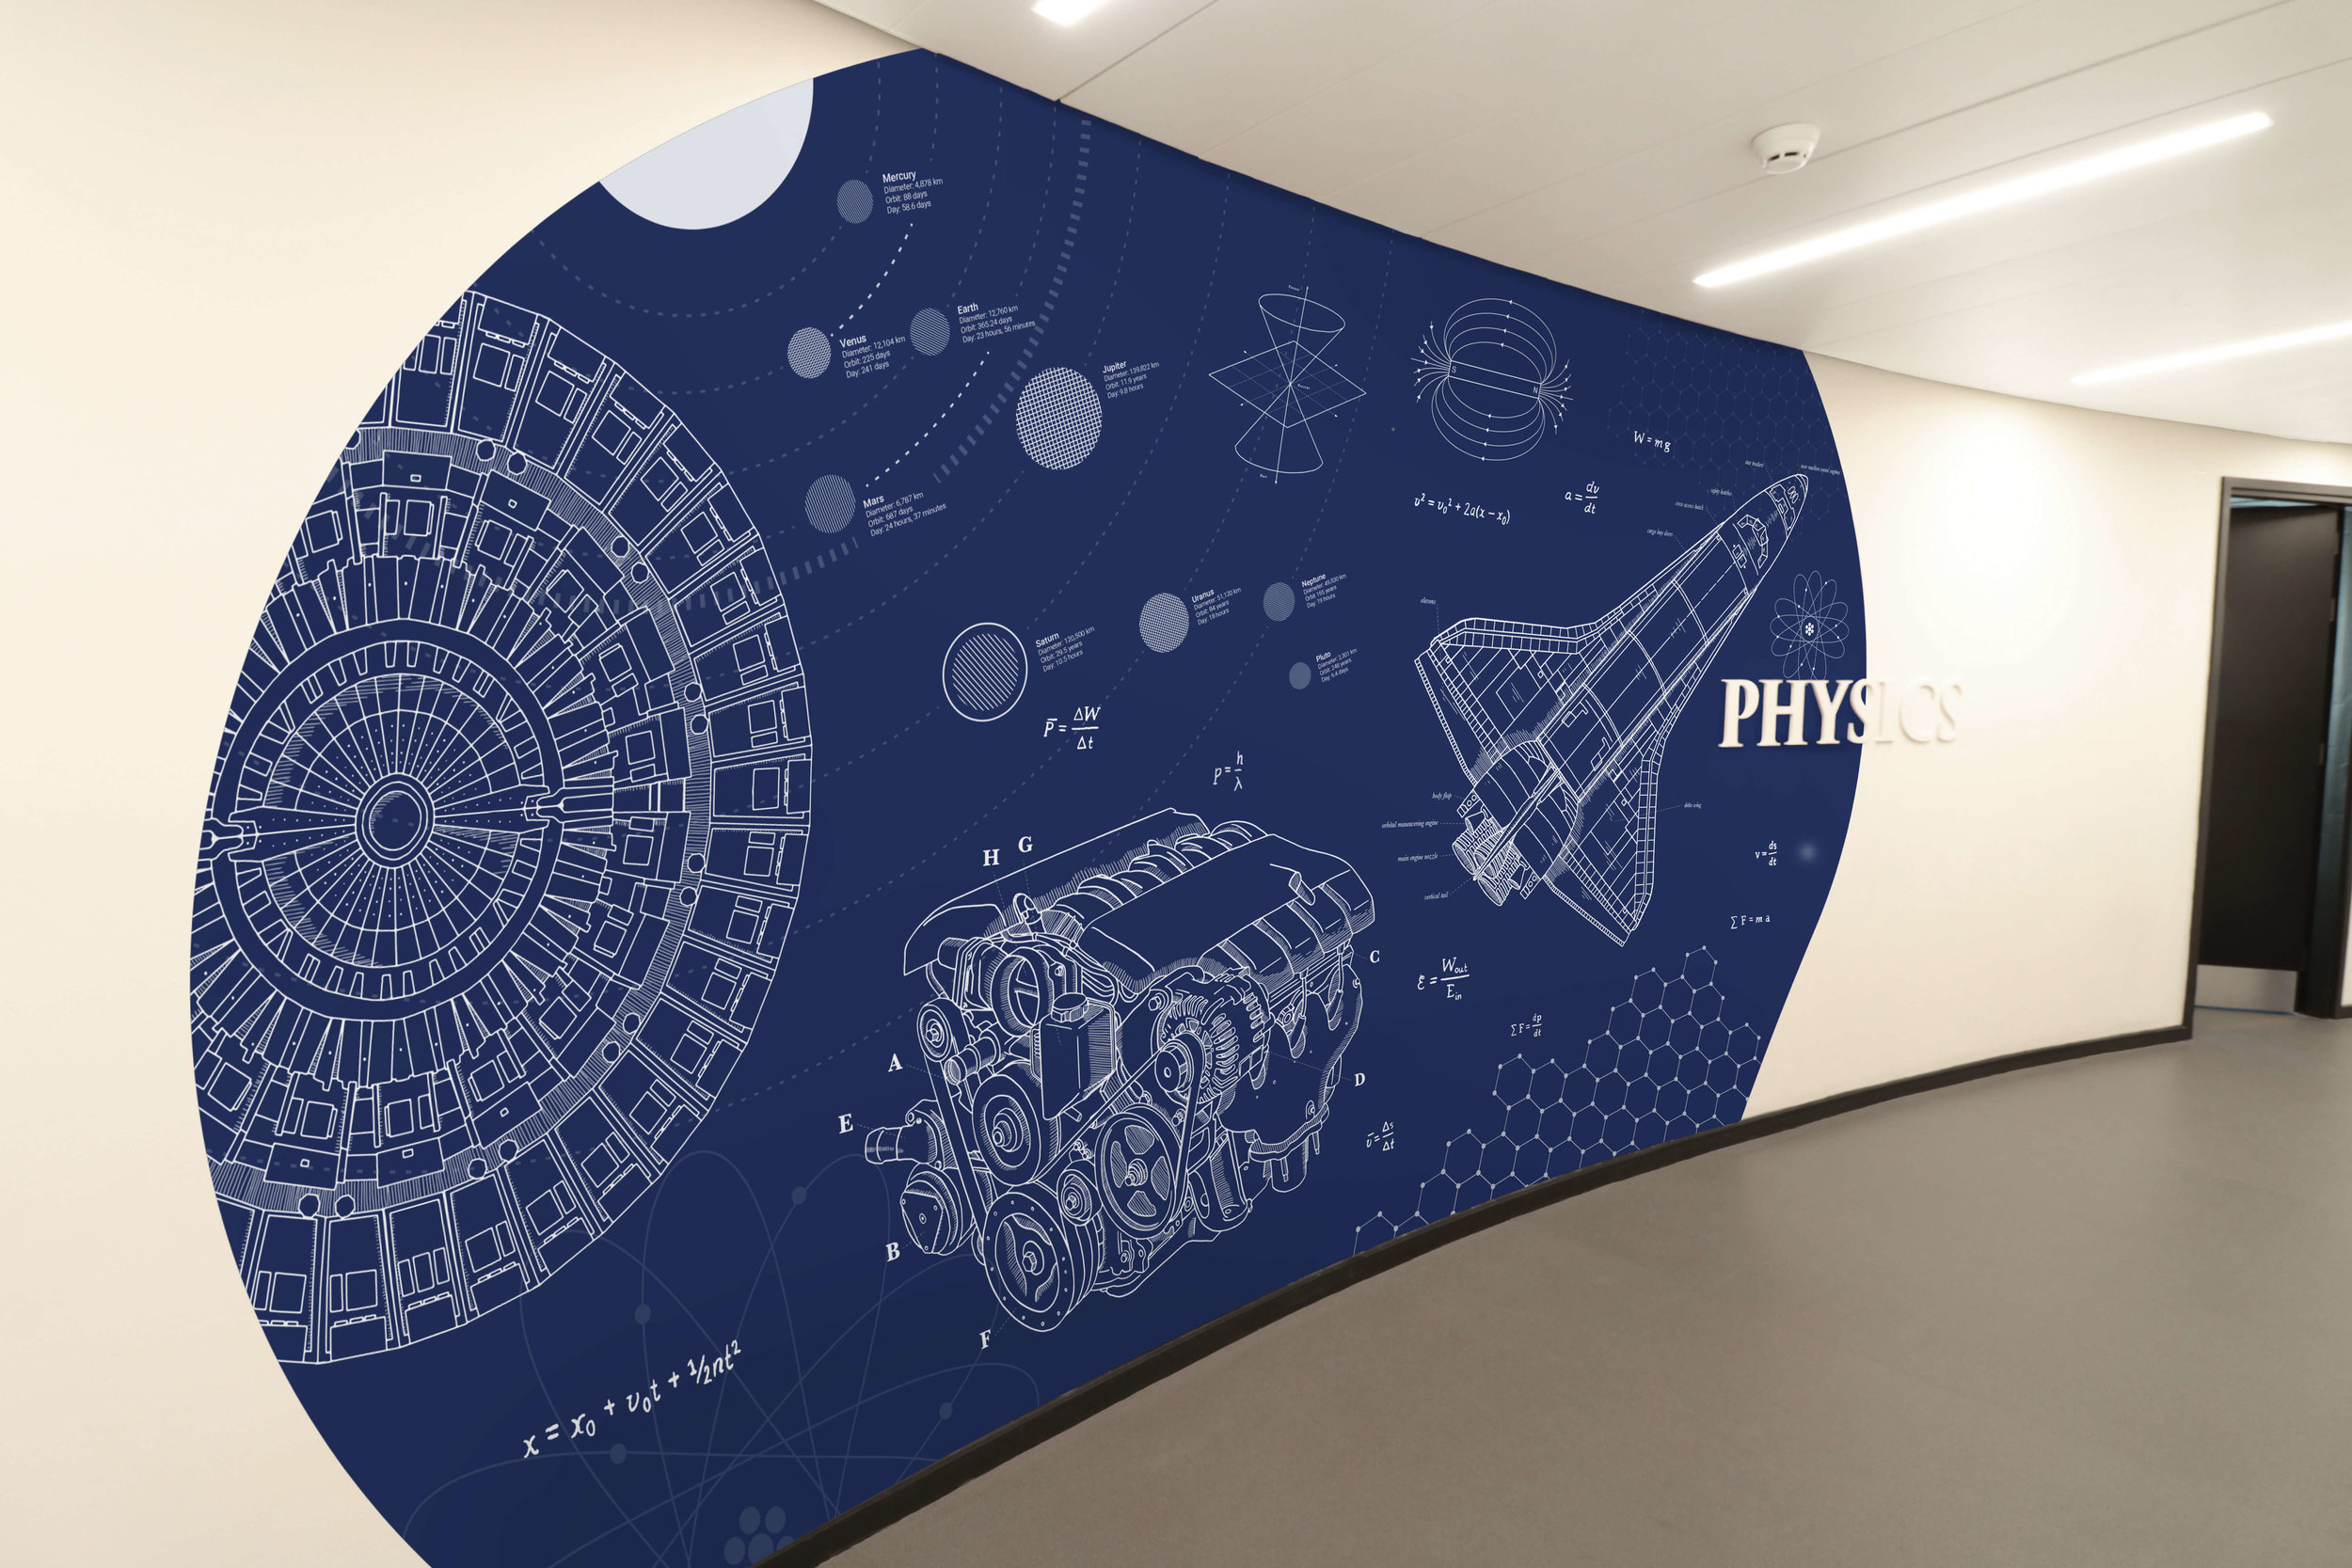 Amazing science wall art | Physics wall mural | Birmingham, Midlands, UK